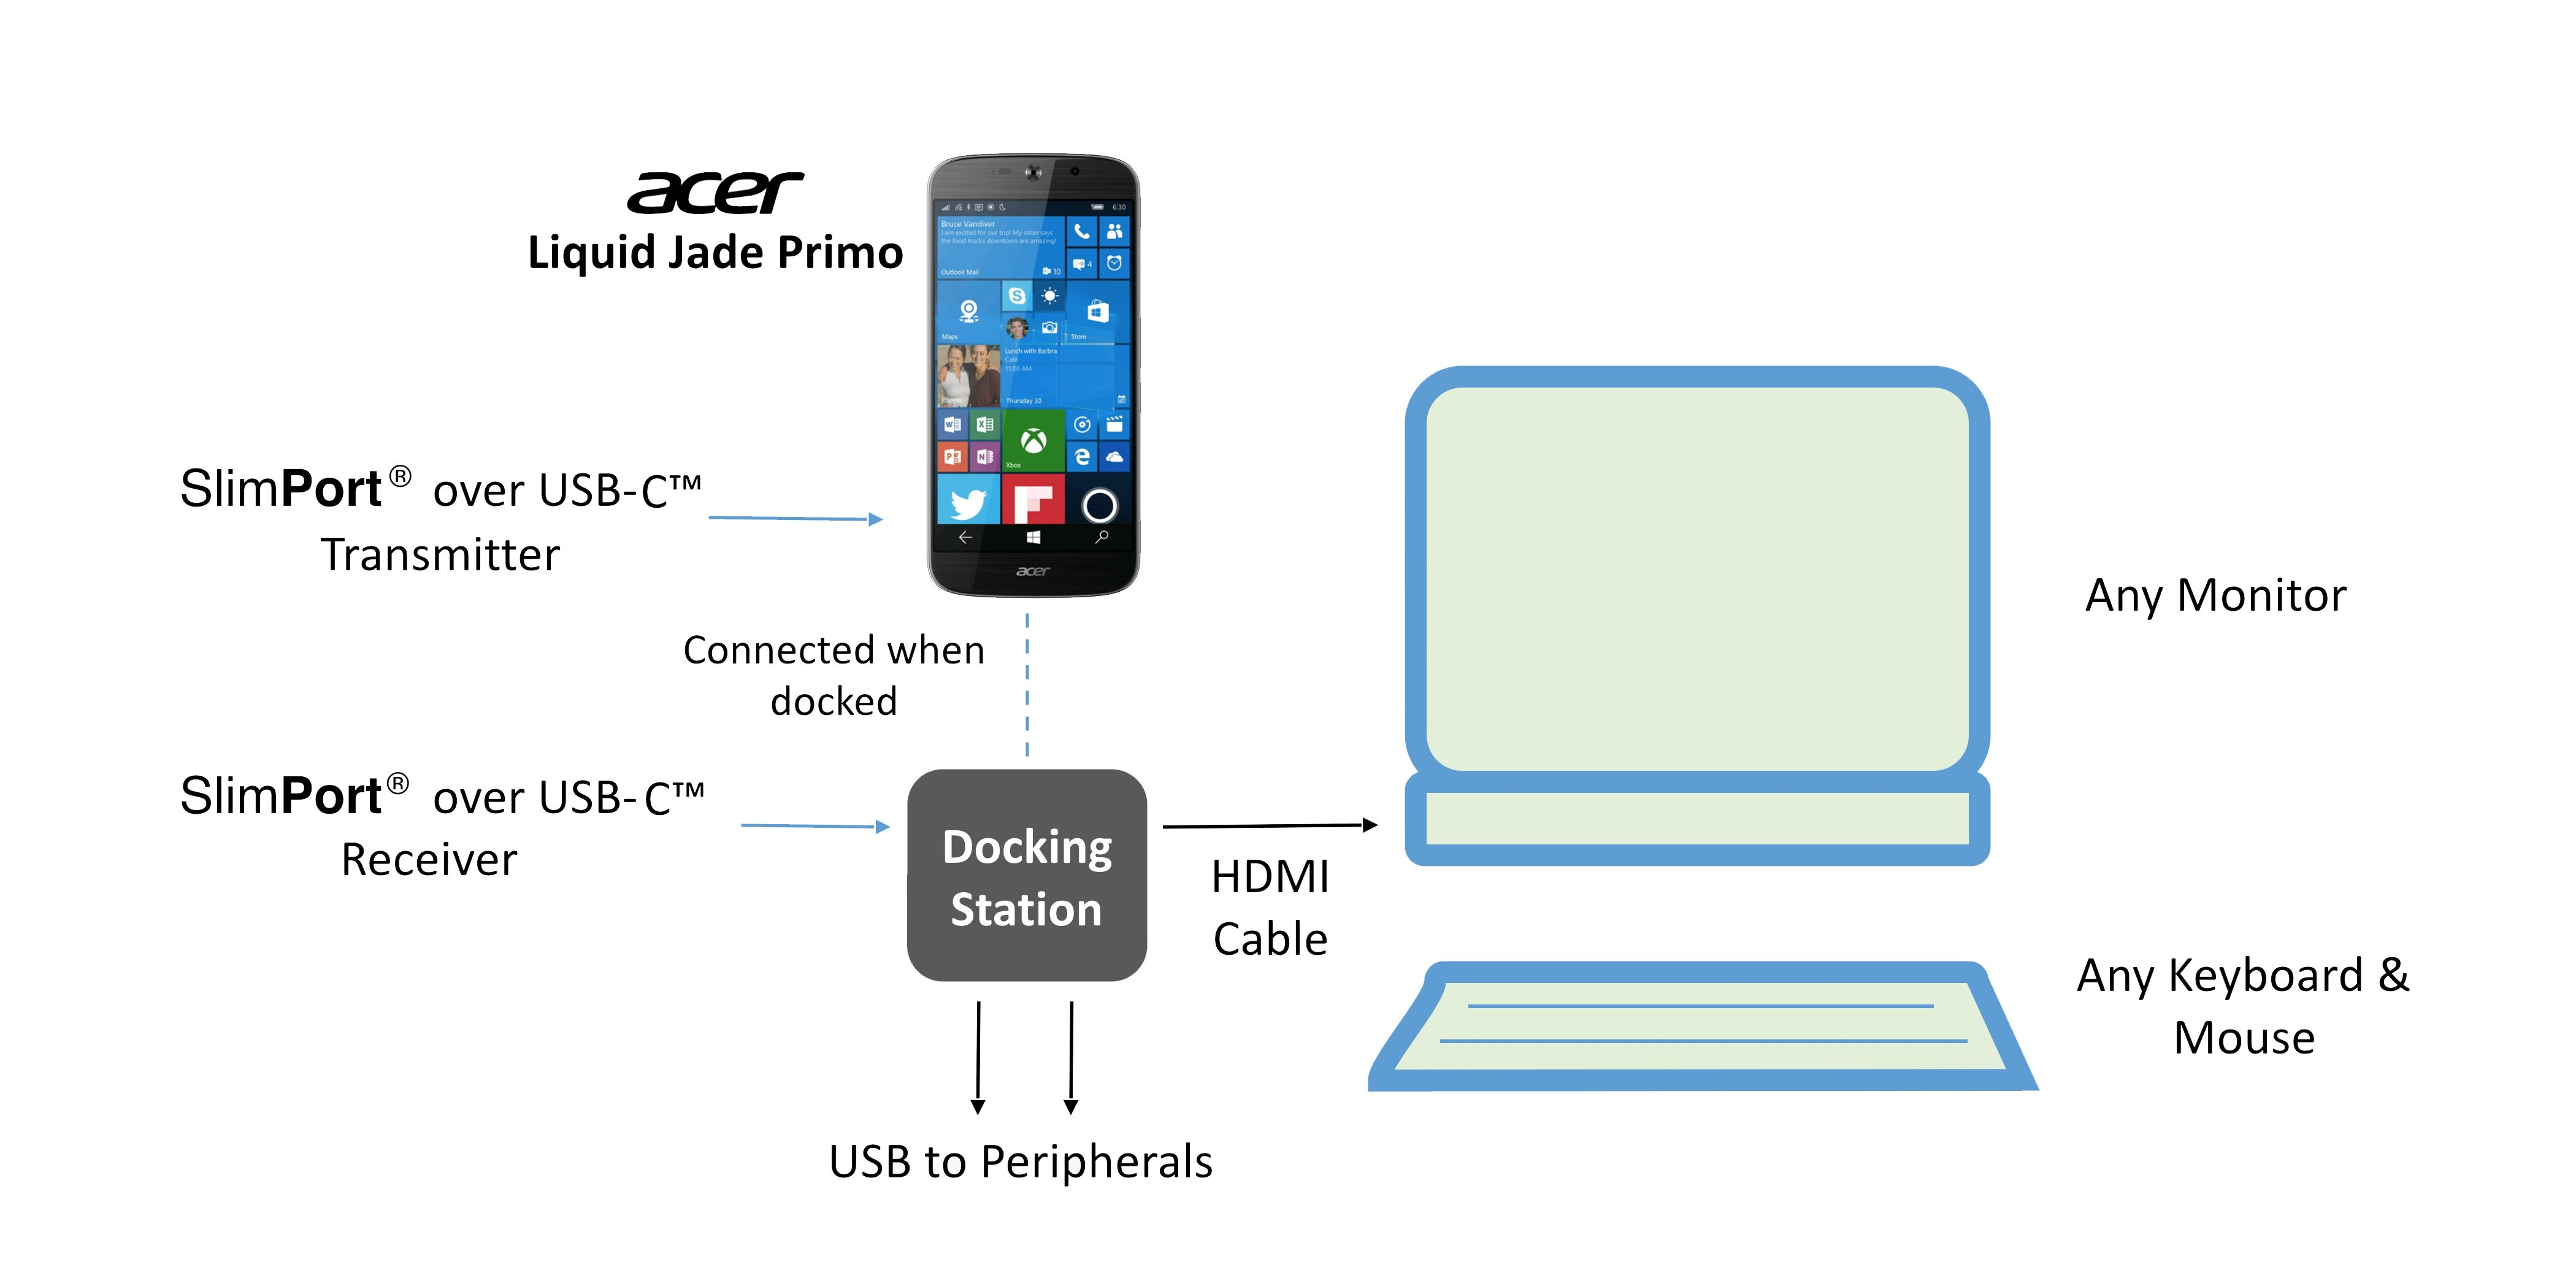 slimport enables windows continuum on acer liquid jade primo rh businesswire com Dock Electrical Wiring Boat Dock Wiring Bad